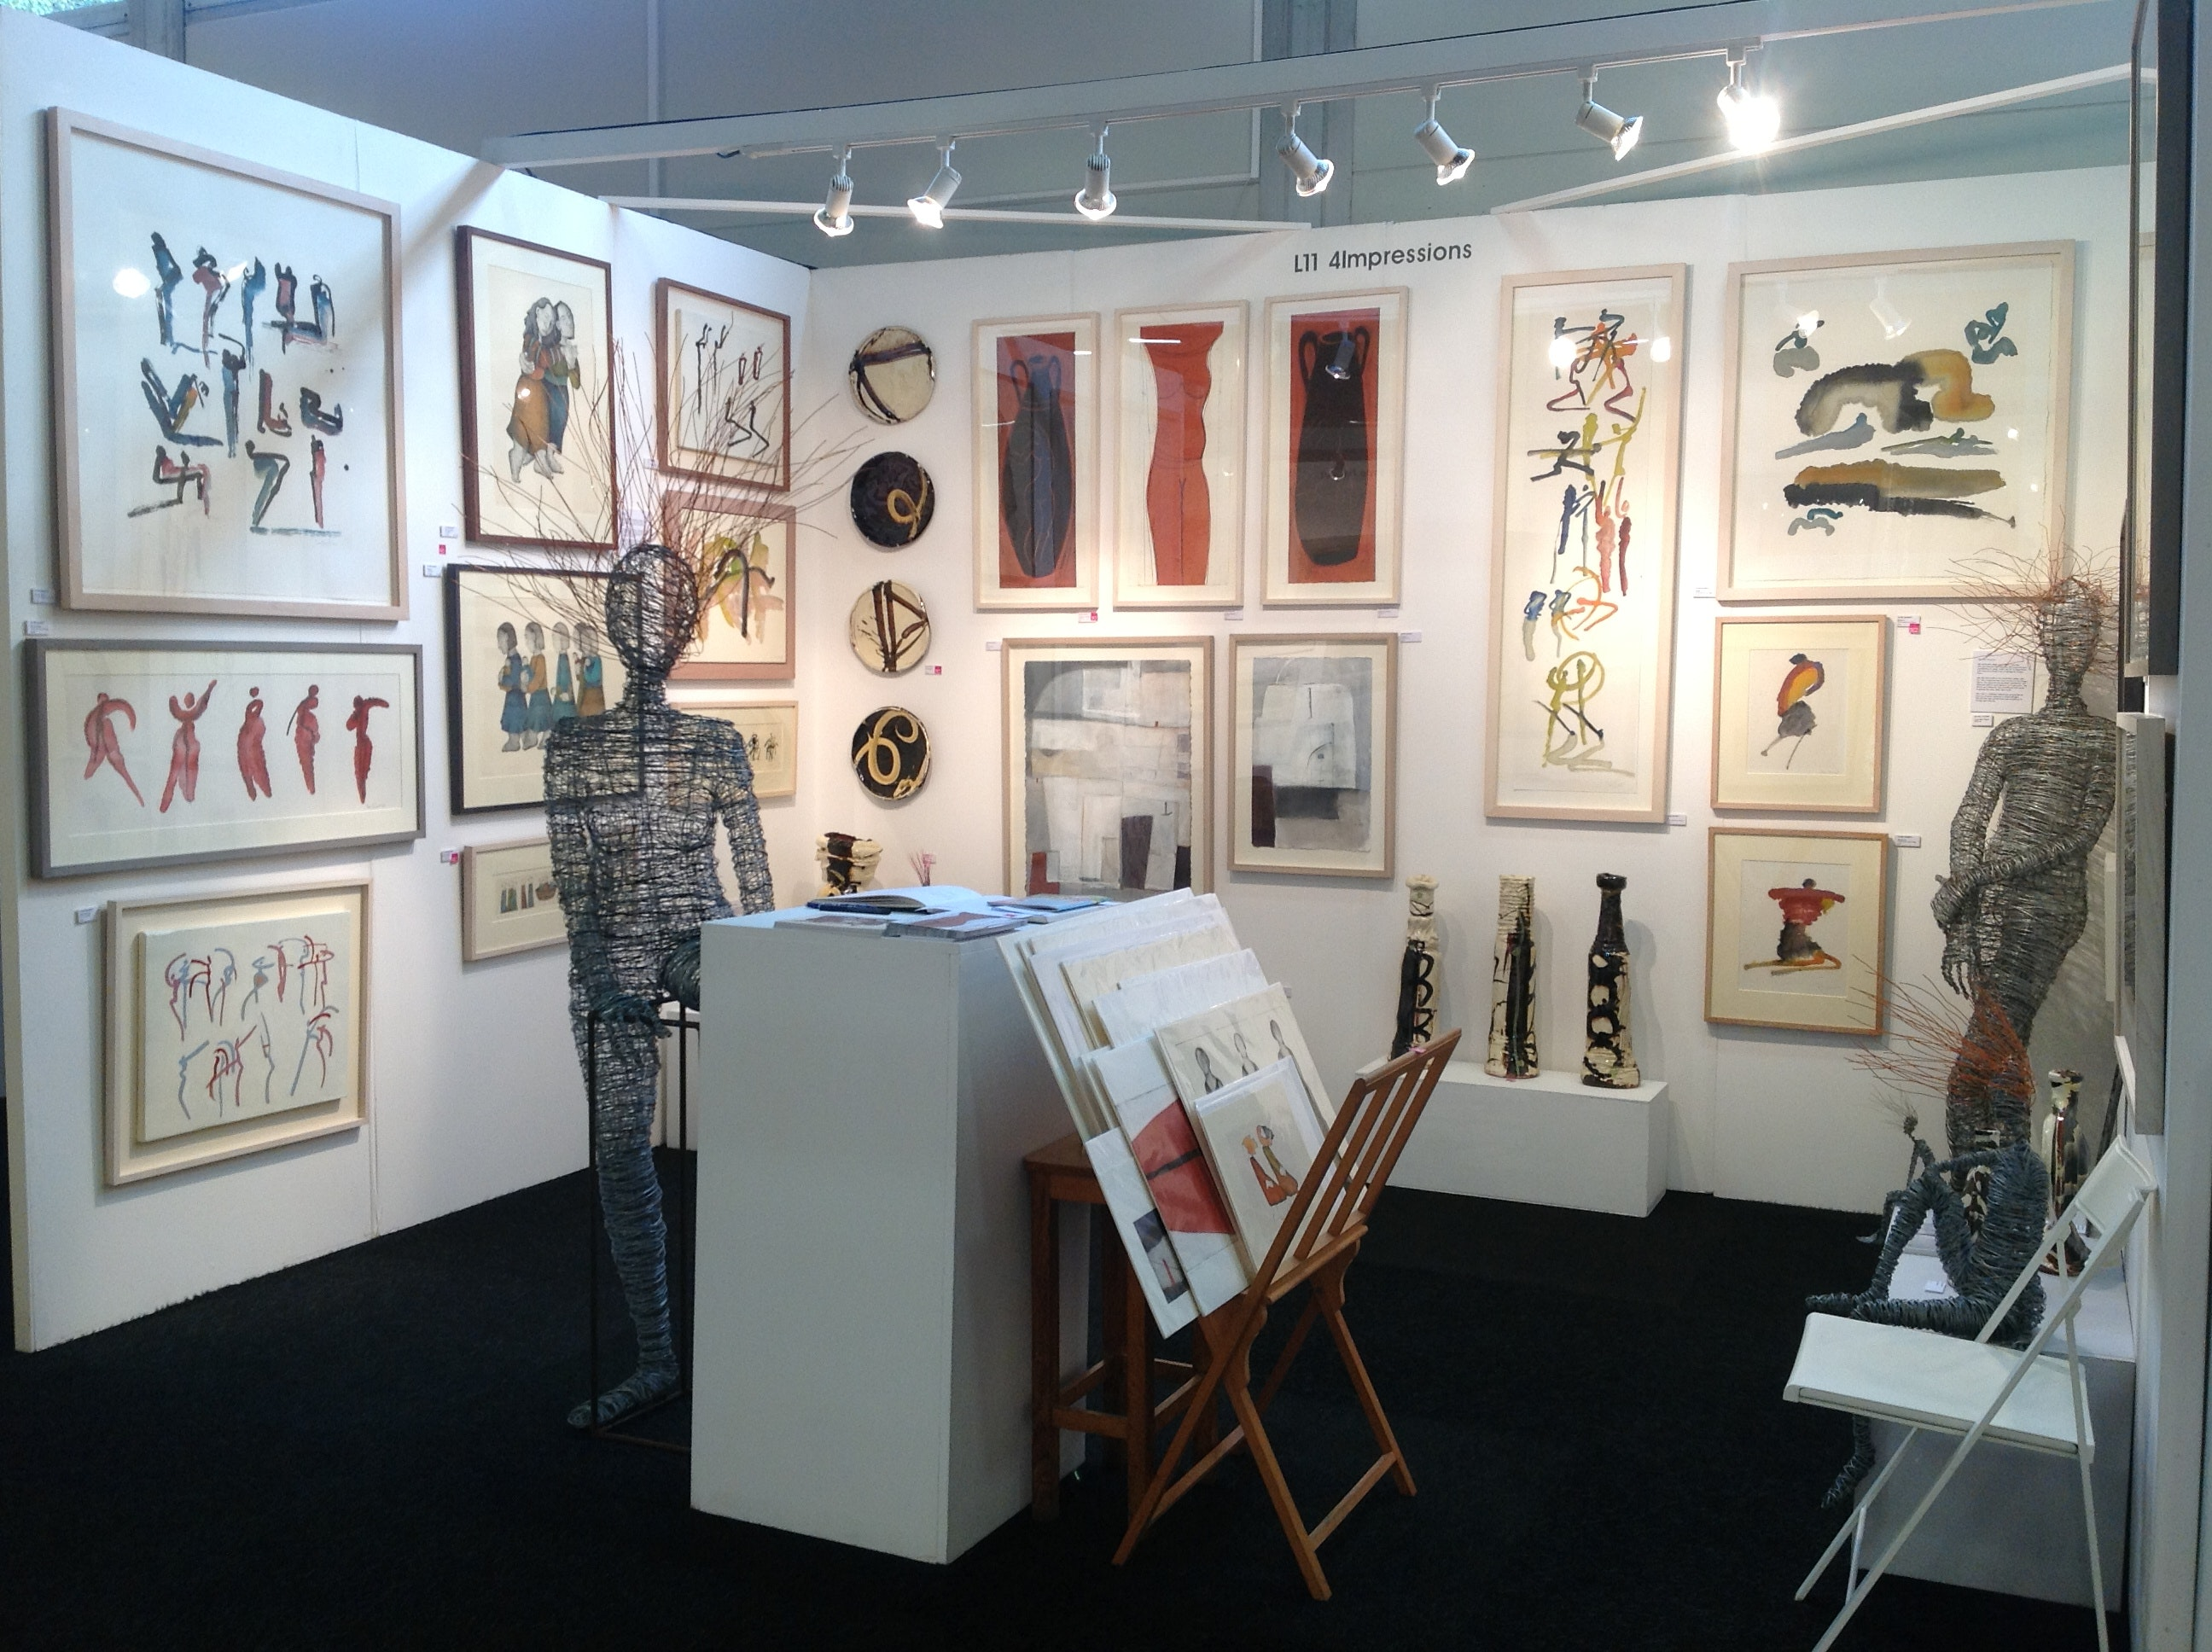 Affordable Art Fair, London